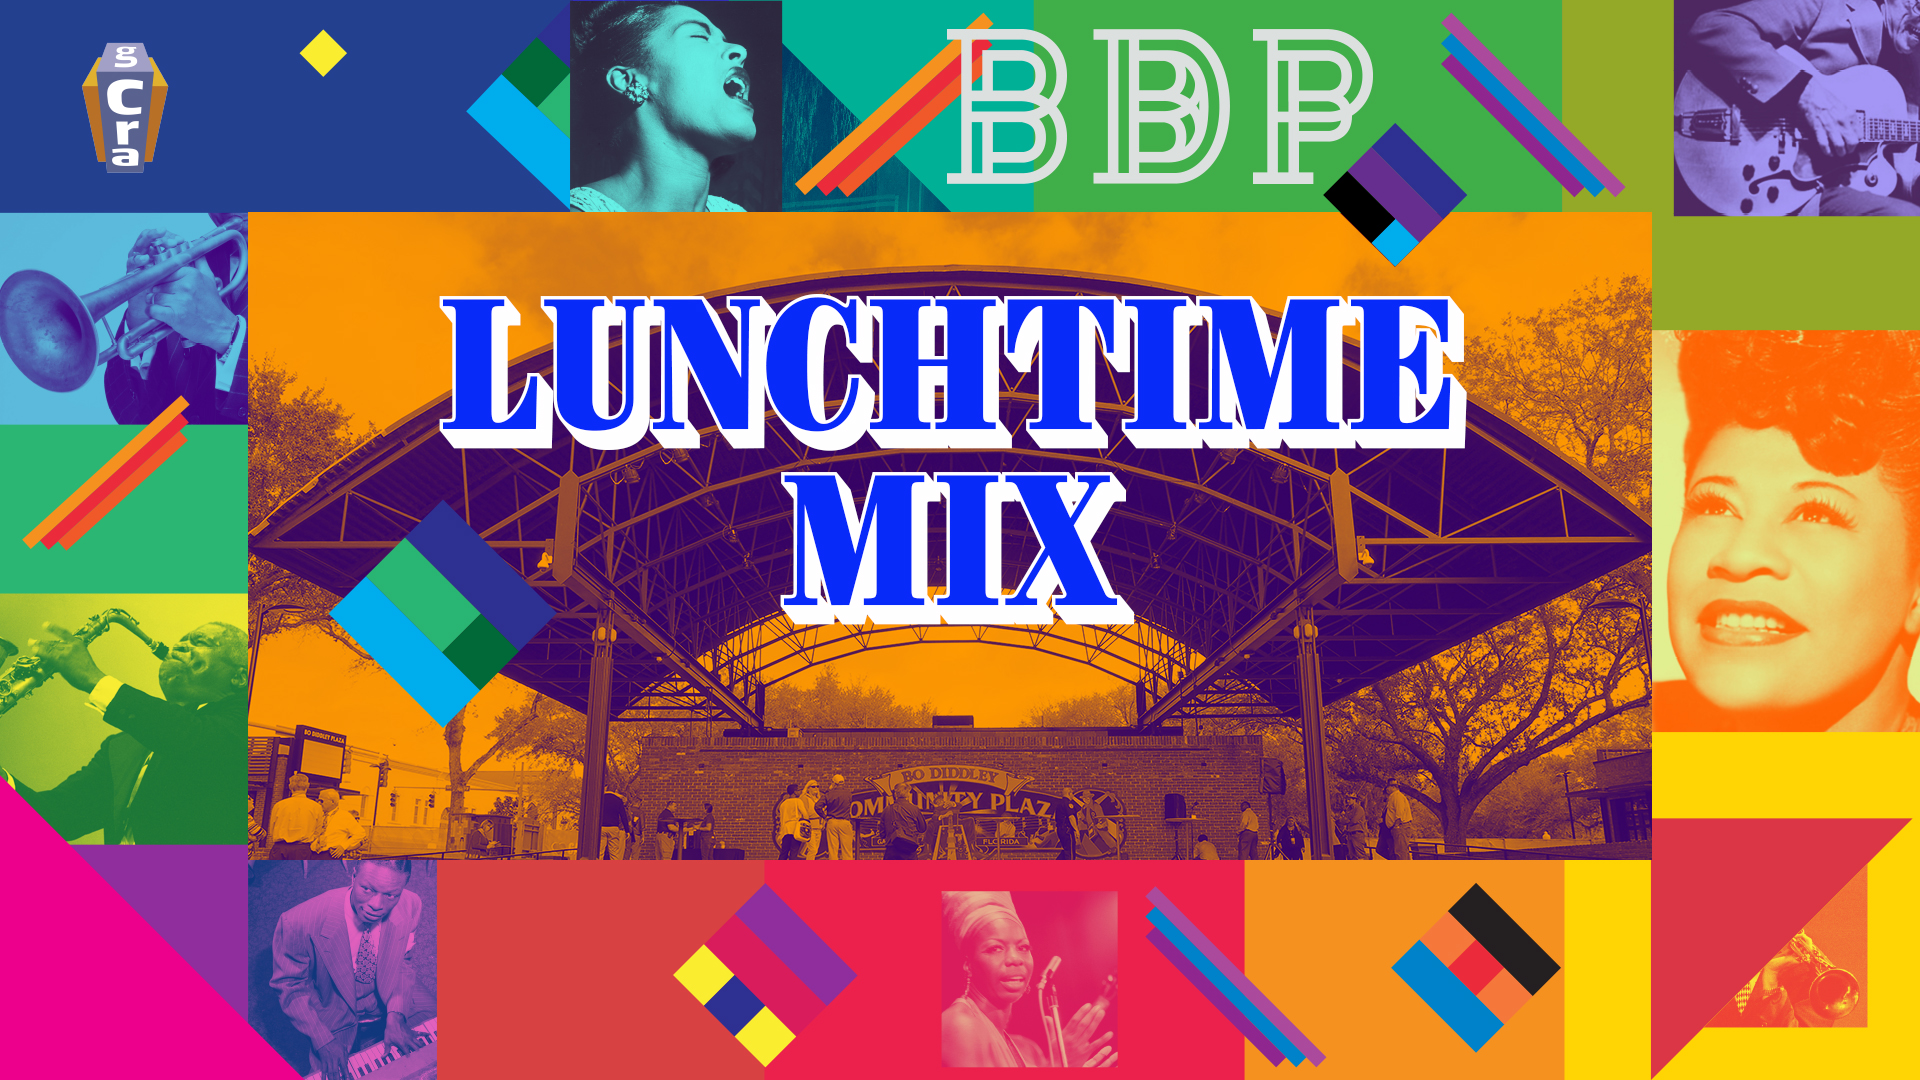 COME DOWN TO BO DIDDLEY PLAZA AND ENJOY YOUR LUNCH WHILE YOU LISTEN TO AND ECLECTIC MIX OF JAZZ.